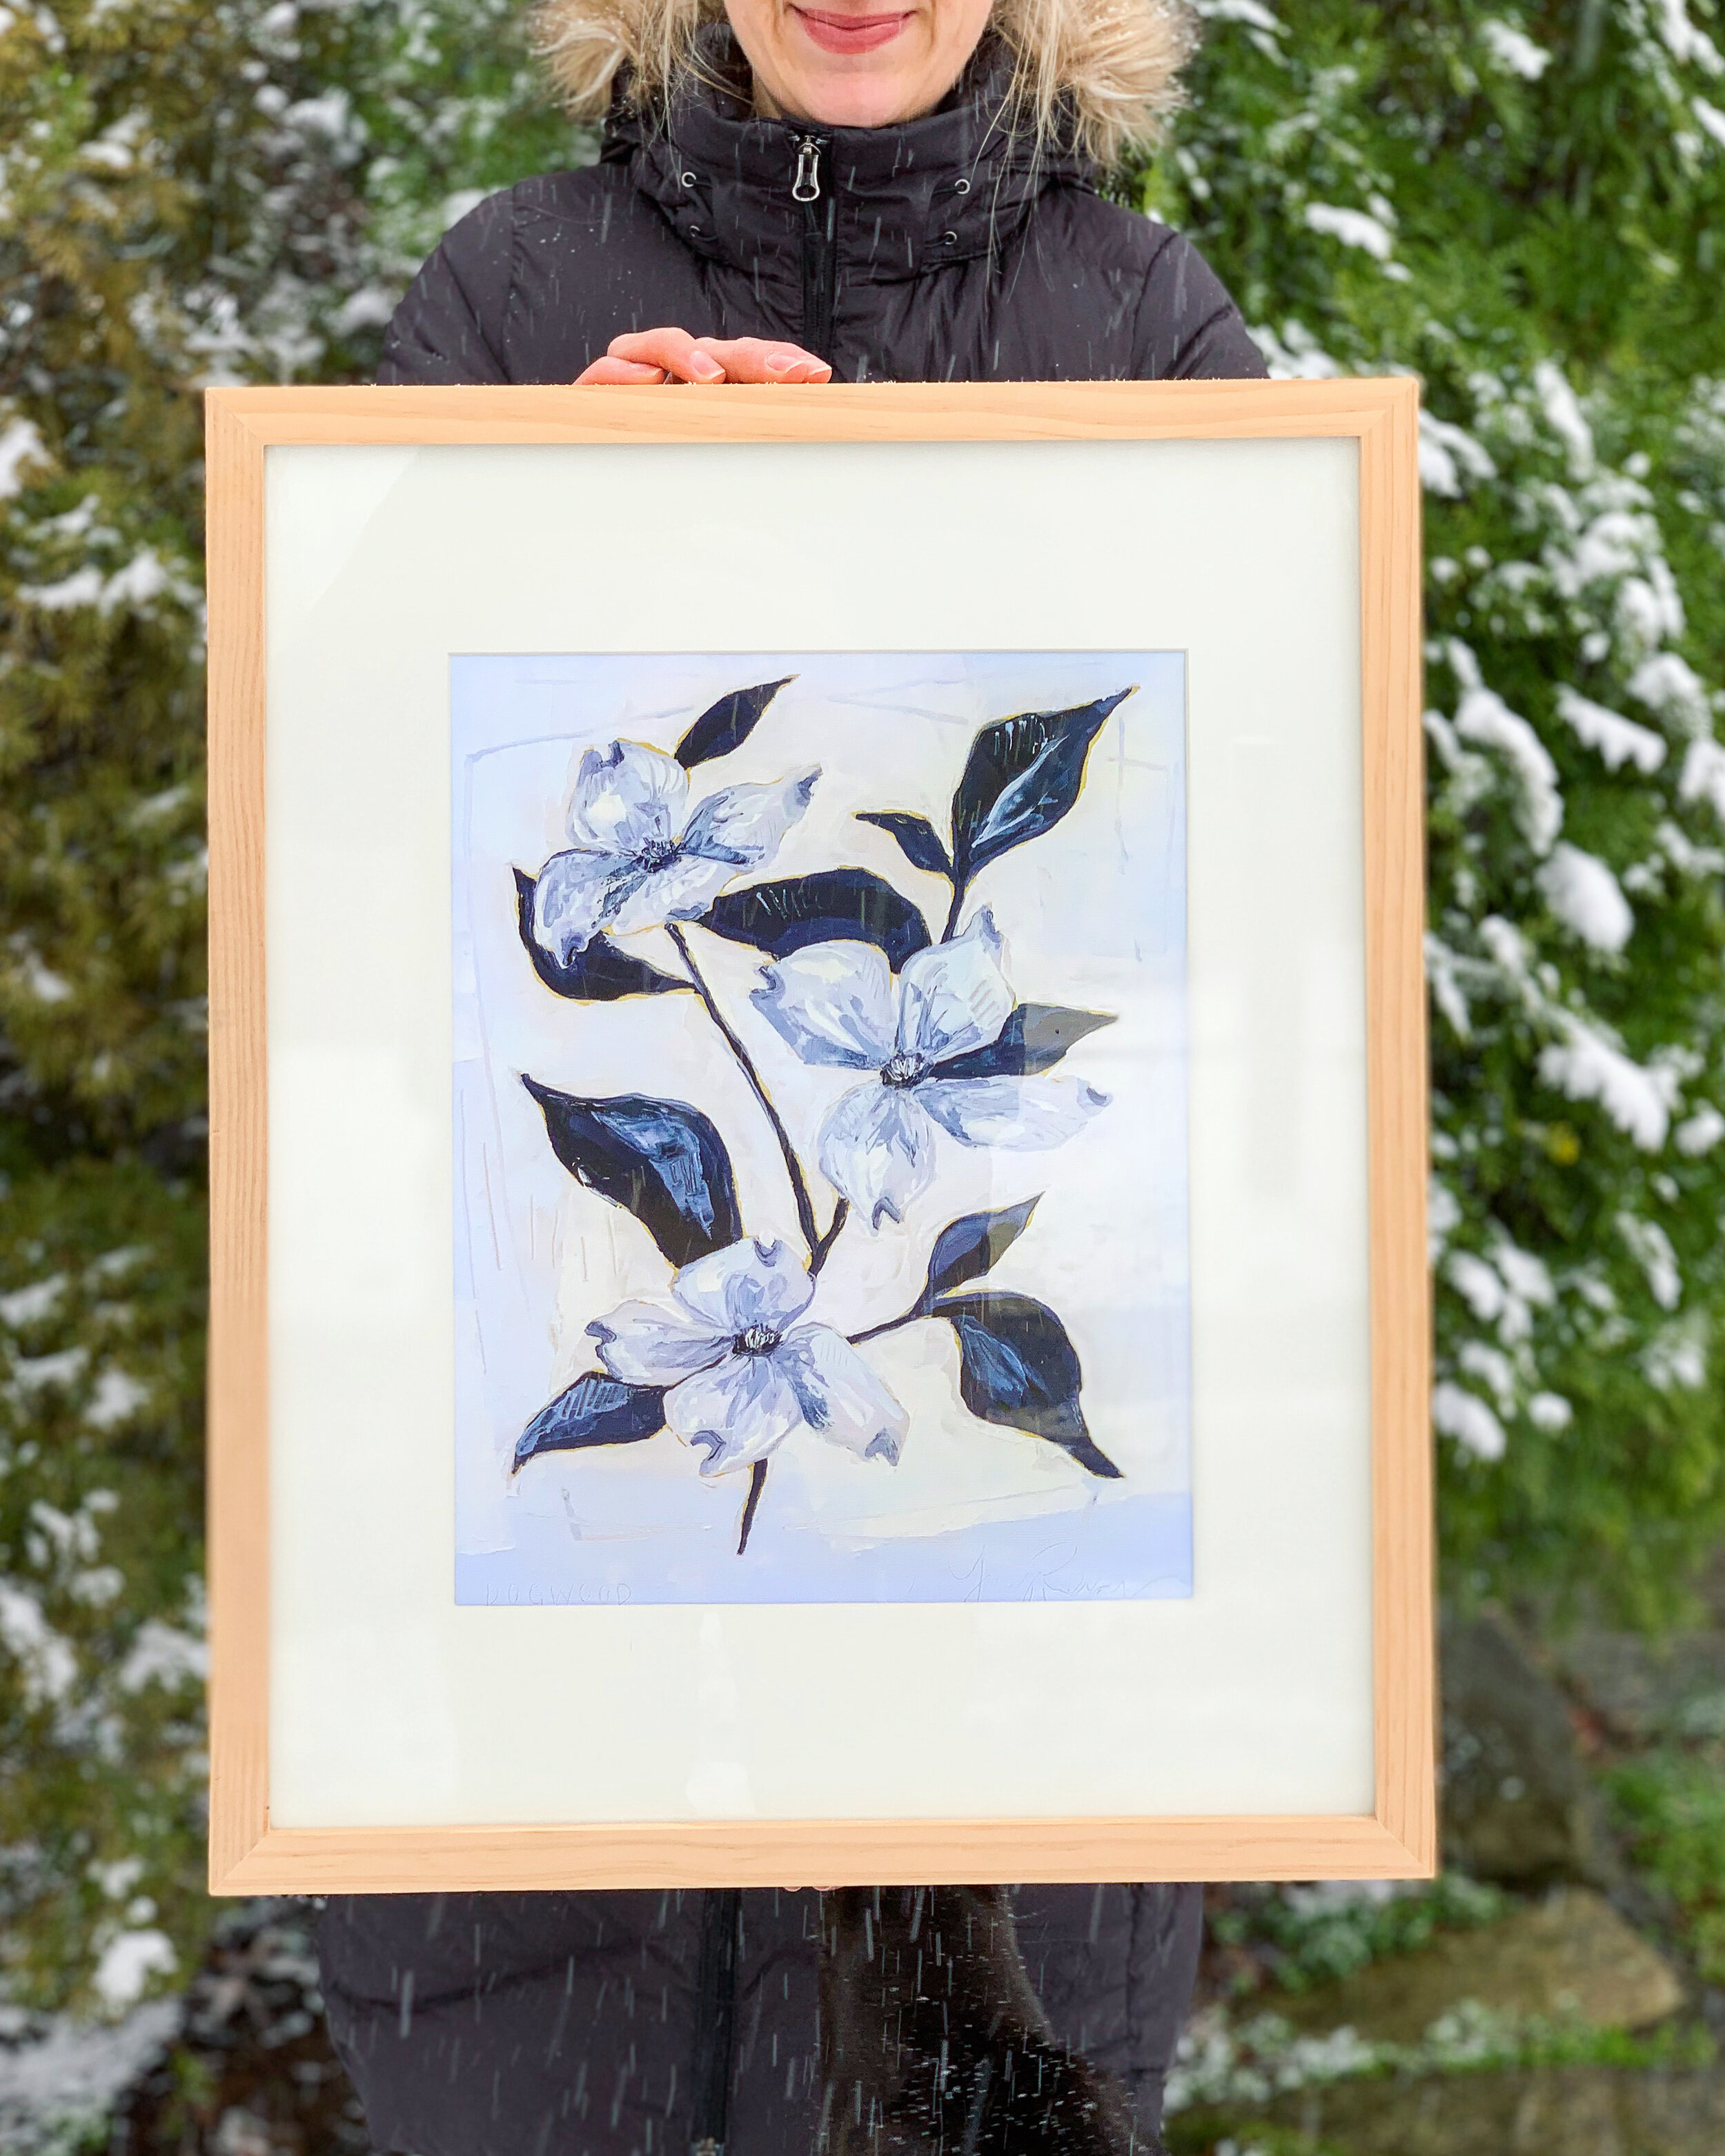 Spent a snow day making new Blue Botanical prints